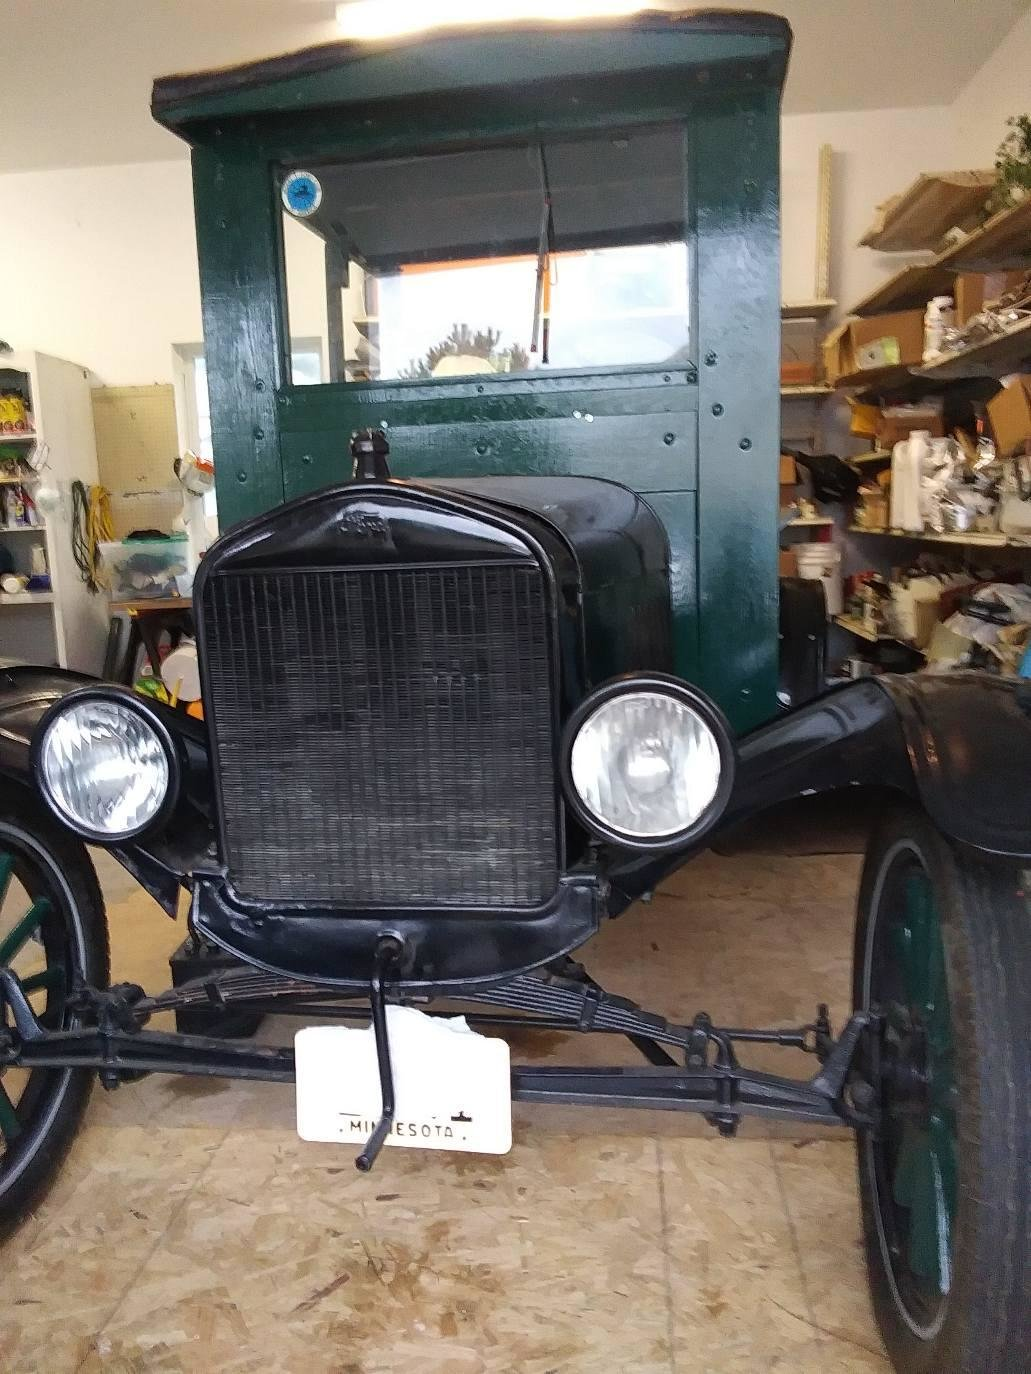 1924 Ford Model T Truck-completely restored For Sale (picture 1 of 6)